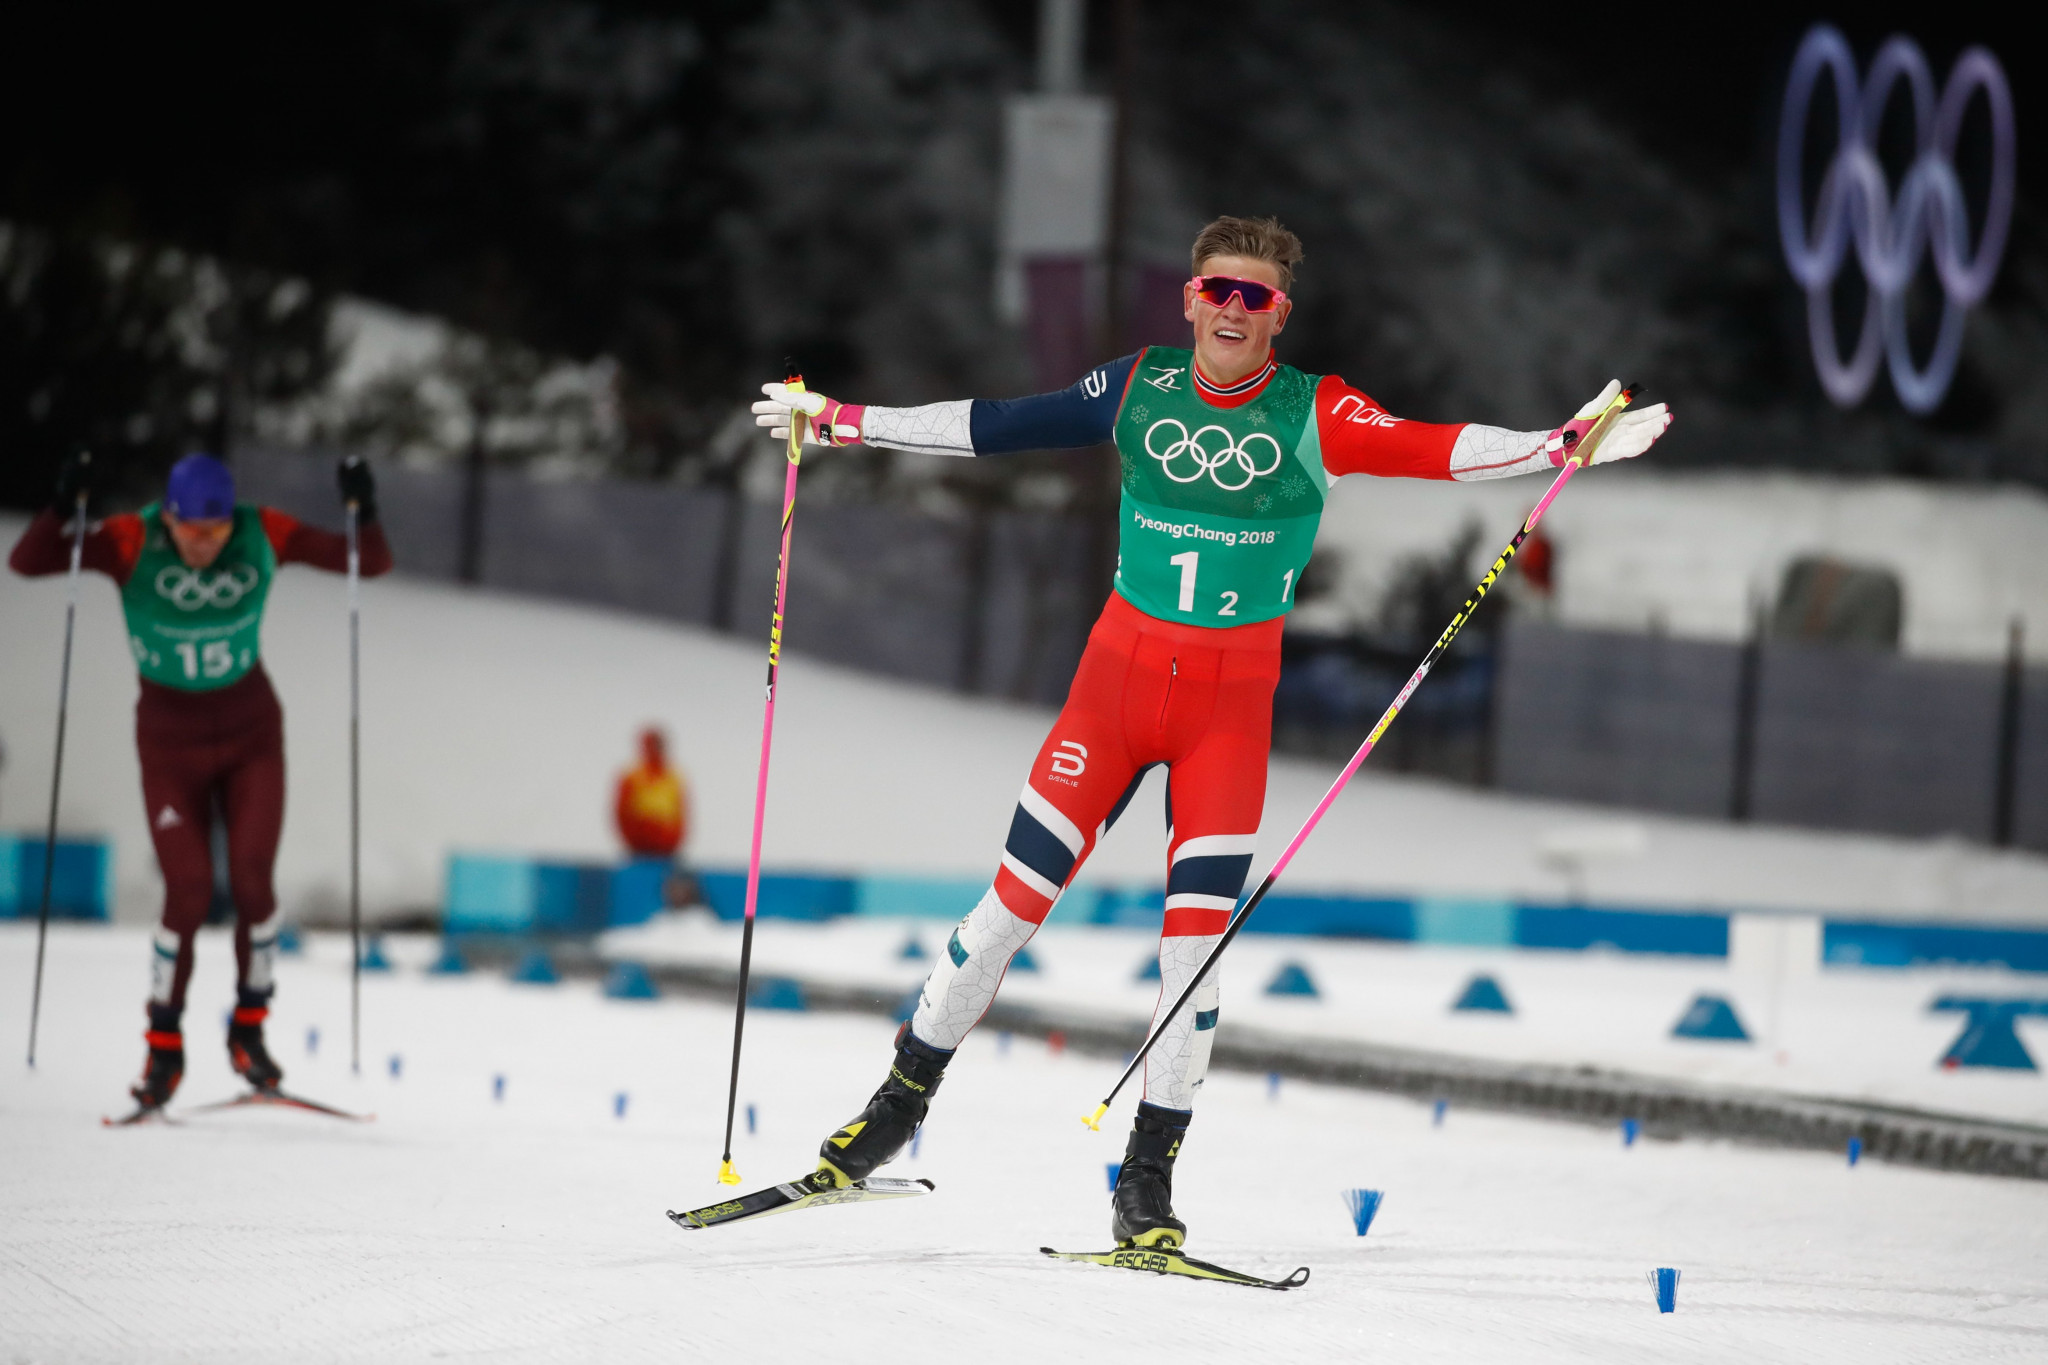 Olympic champions to act as mentors at youth cross-country skiing camp